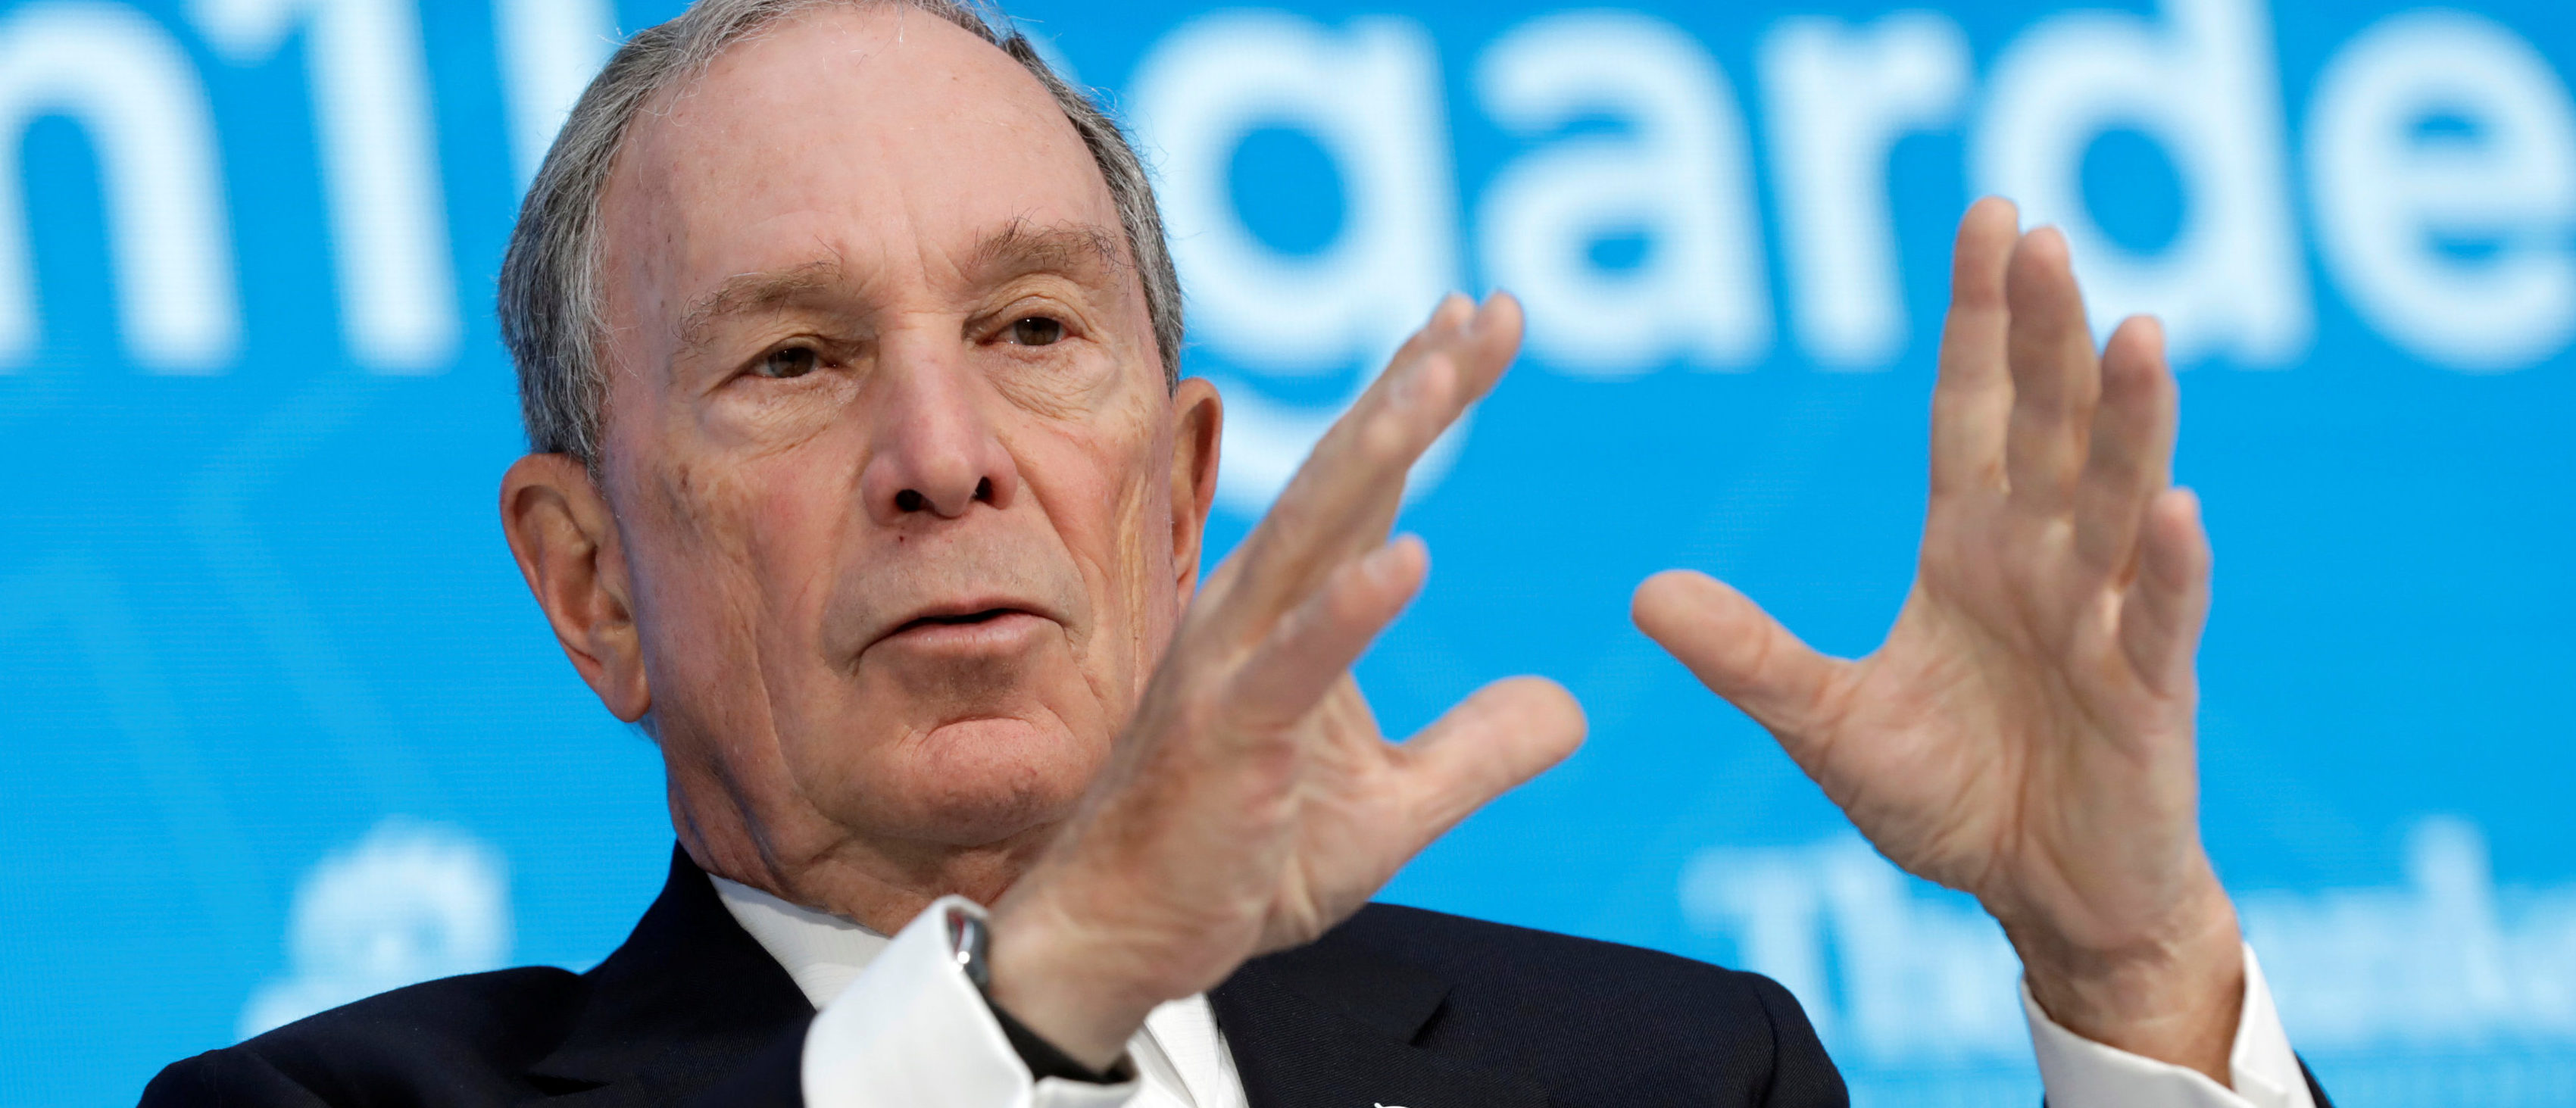 Special envoy to the United Nations for climate change Michael Bloomberg speaks during the One-on-One discussion panel with International Monetary Fund (IMF) Managing Director Christine Lagarde on side of the IMF/World Bank spring meeting in Washington, U.S., April 19, 2018. REUTERS/Yuri Gripas - RC1C9C67D8C0